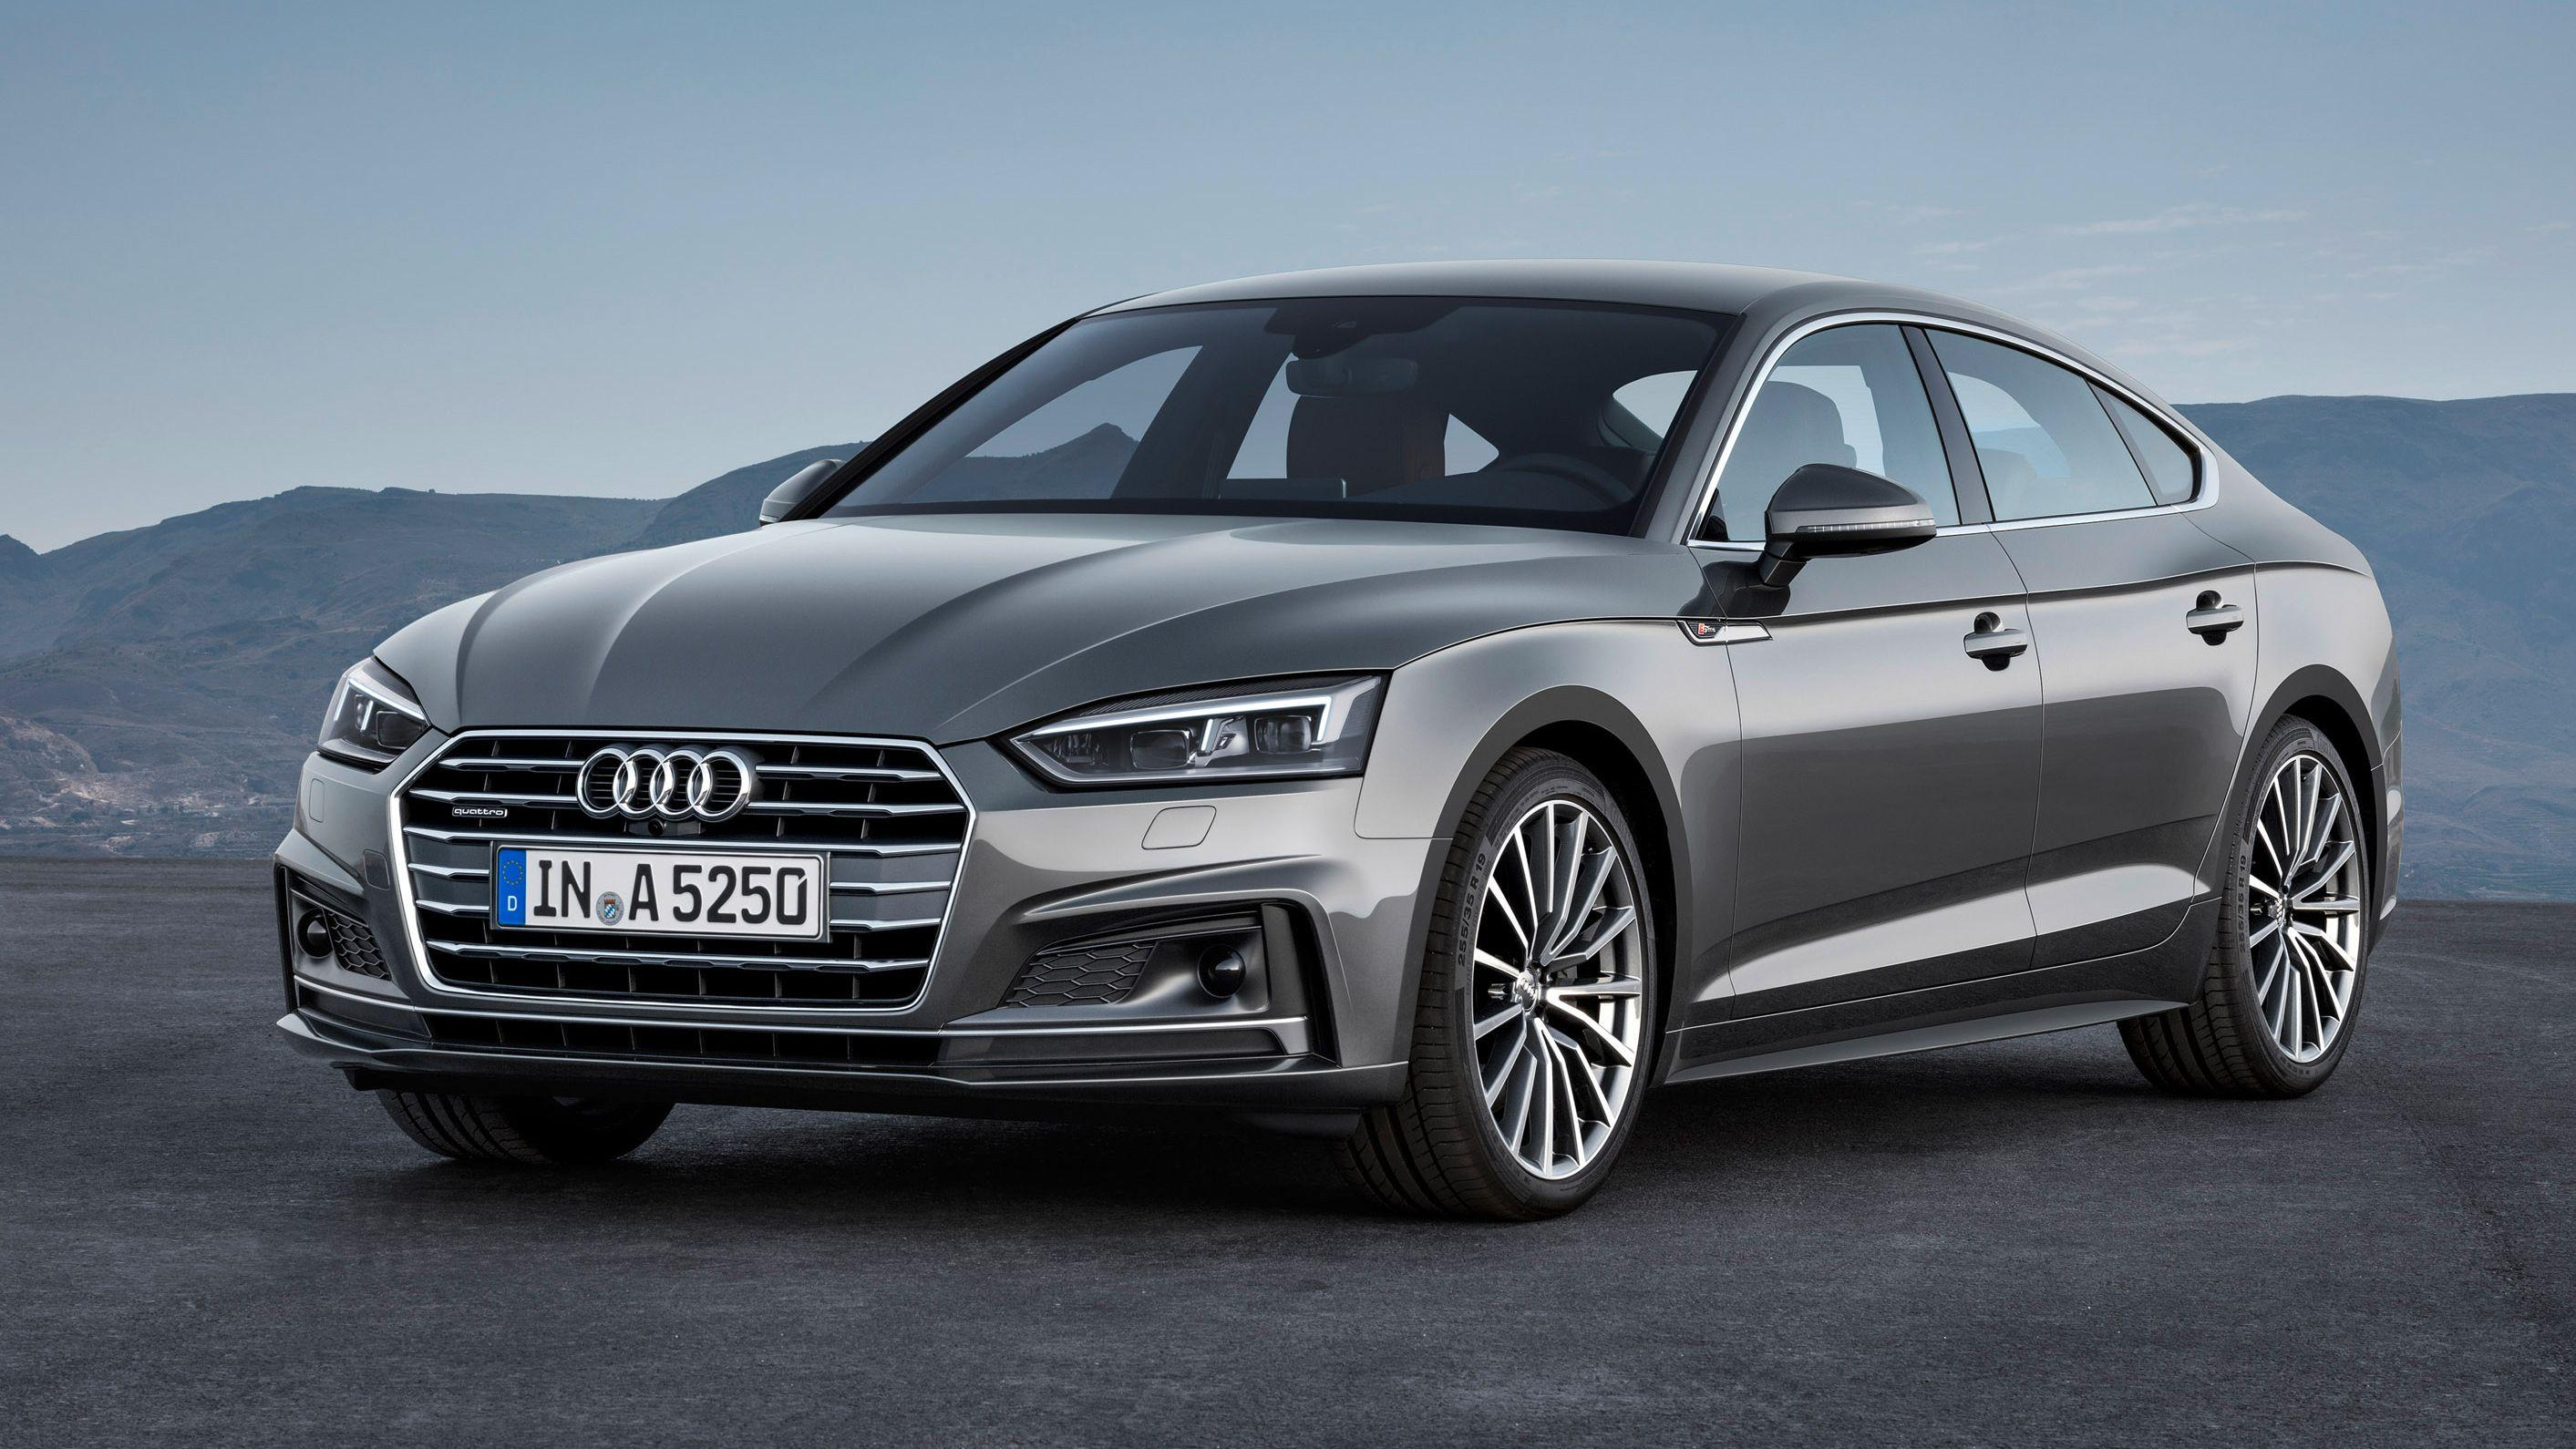 2018 Audi A5 Sportback Wallpapers